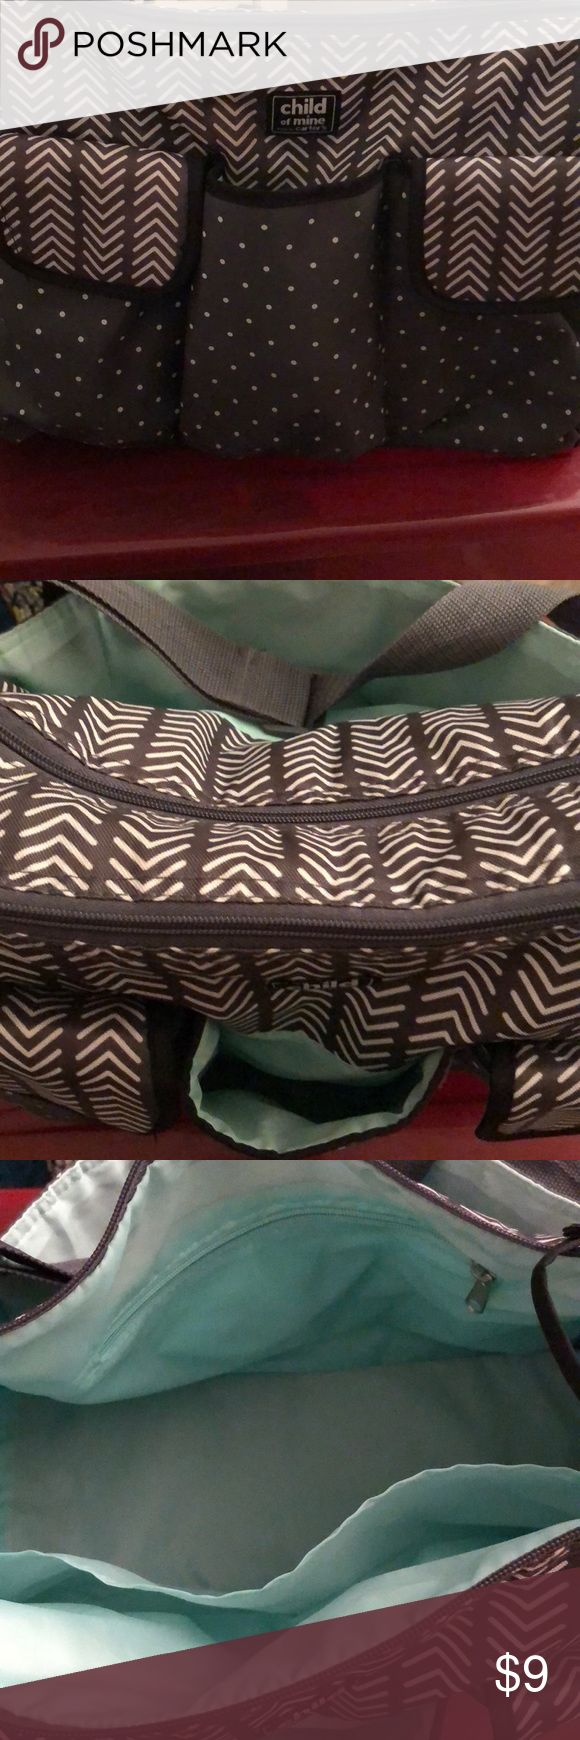 Carter's diaper bag In good condition only used for a trip to see family Carter's Accessories Bags